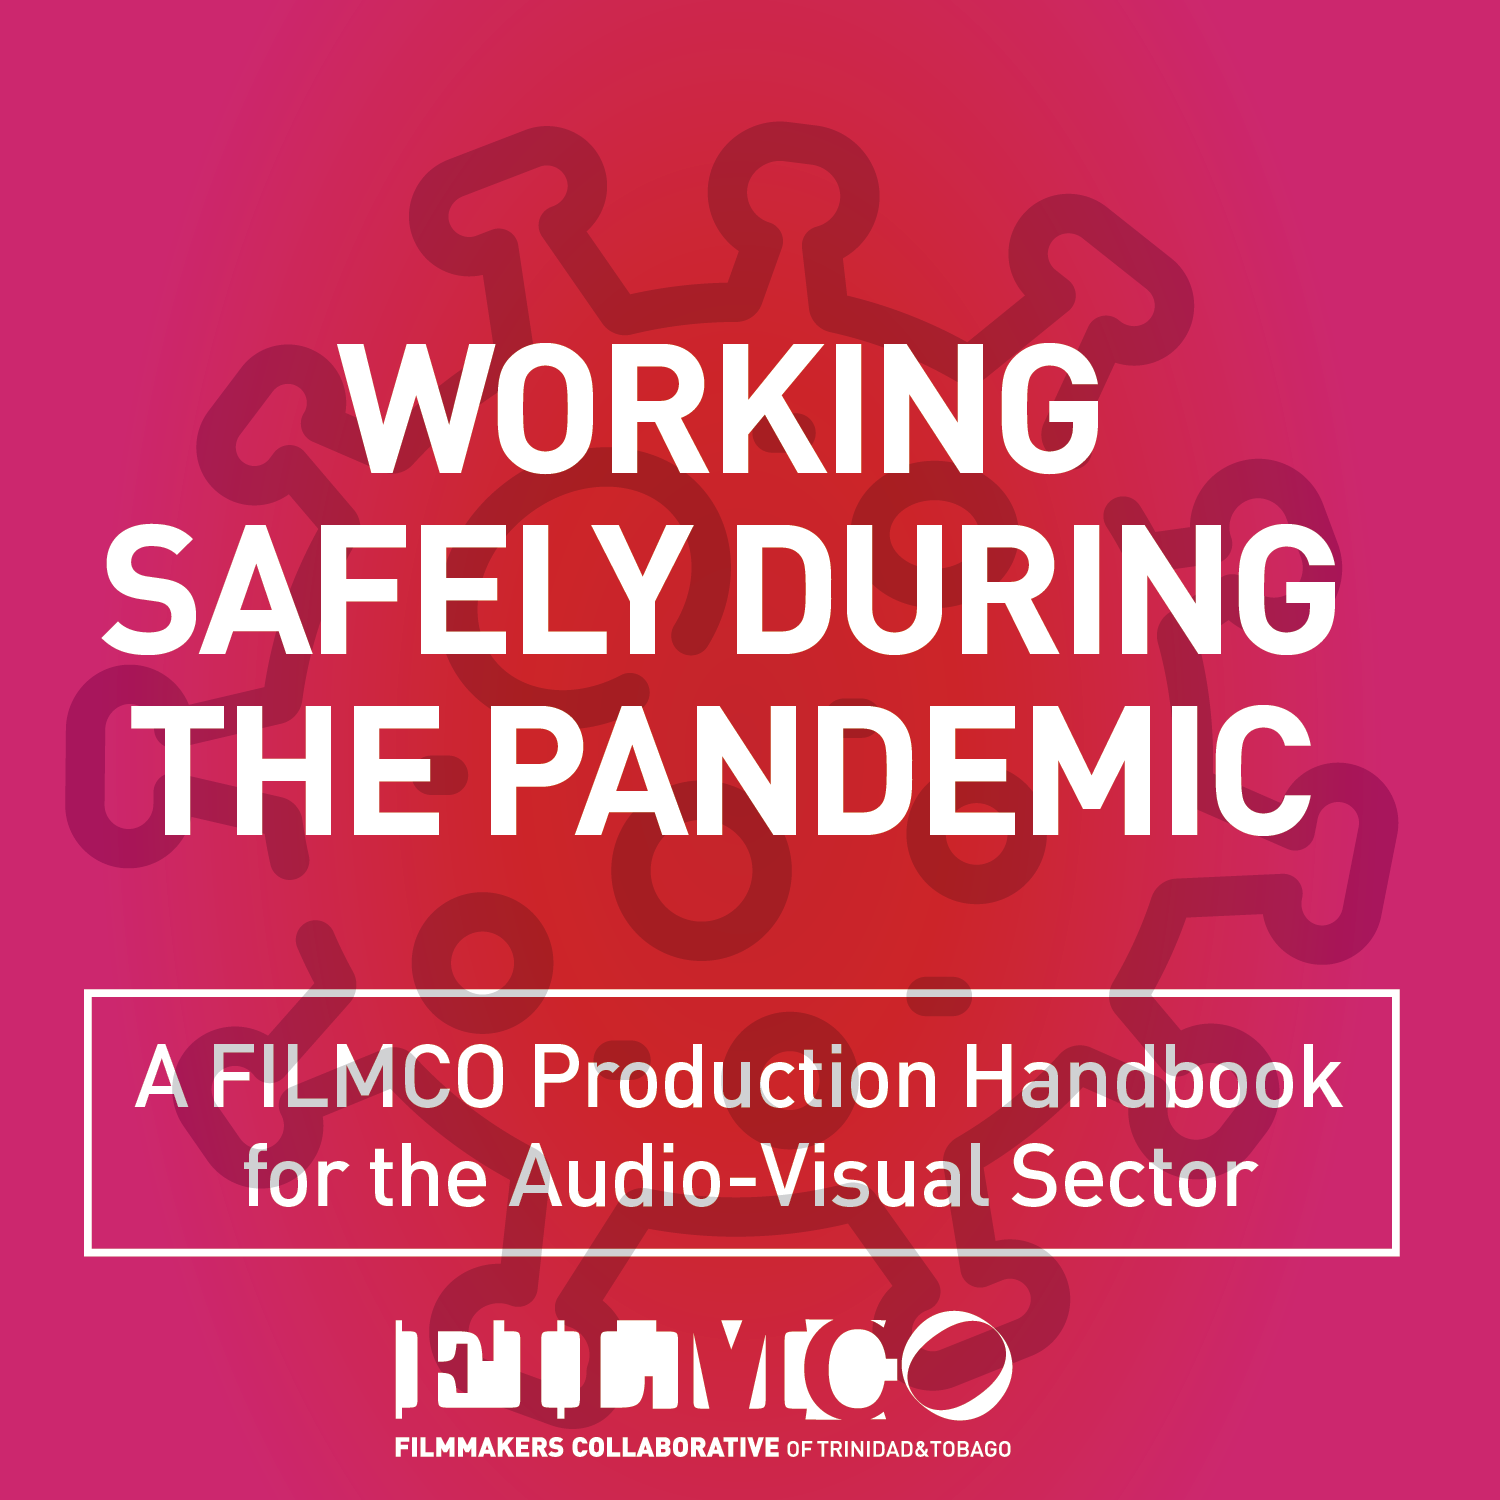 Download 'Working Safely During the Pandemic'